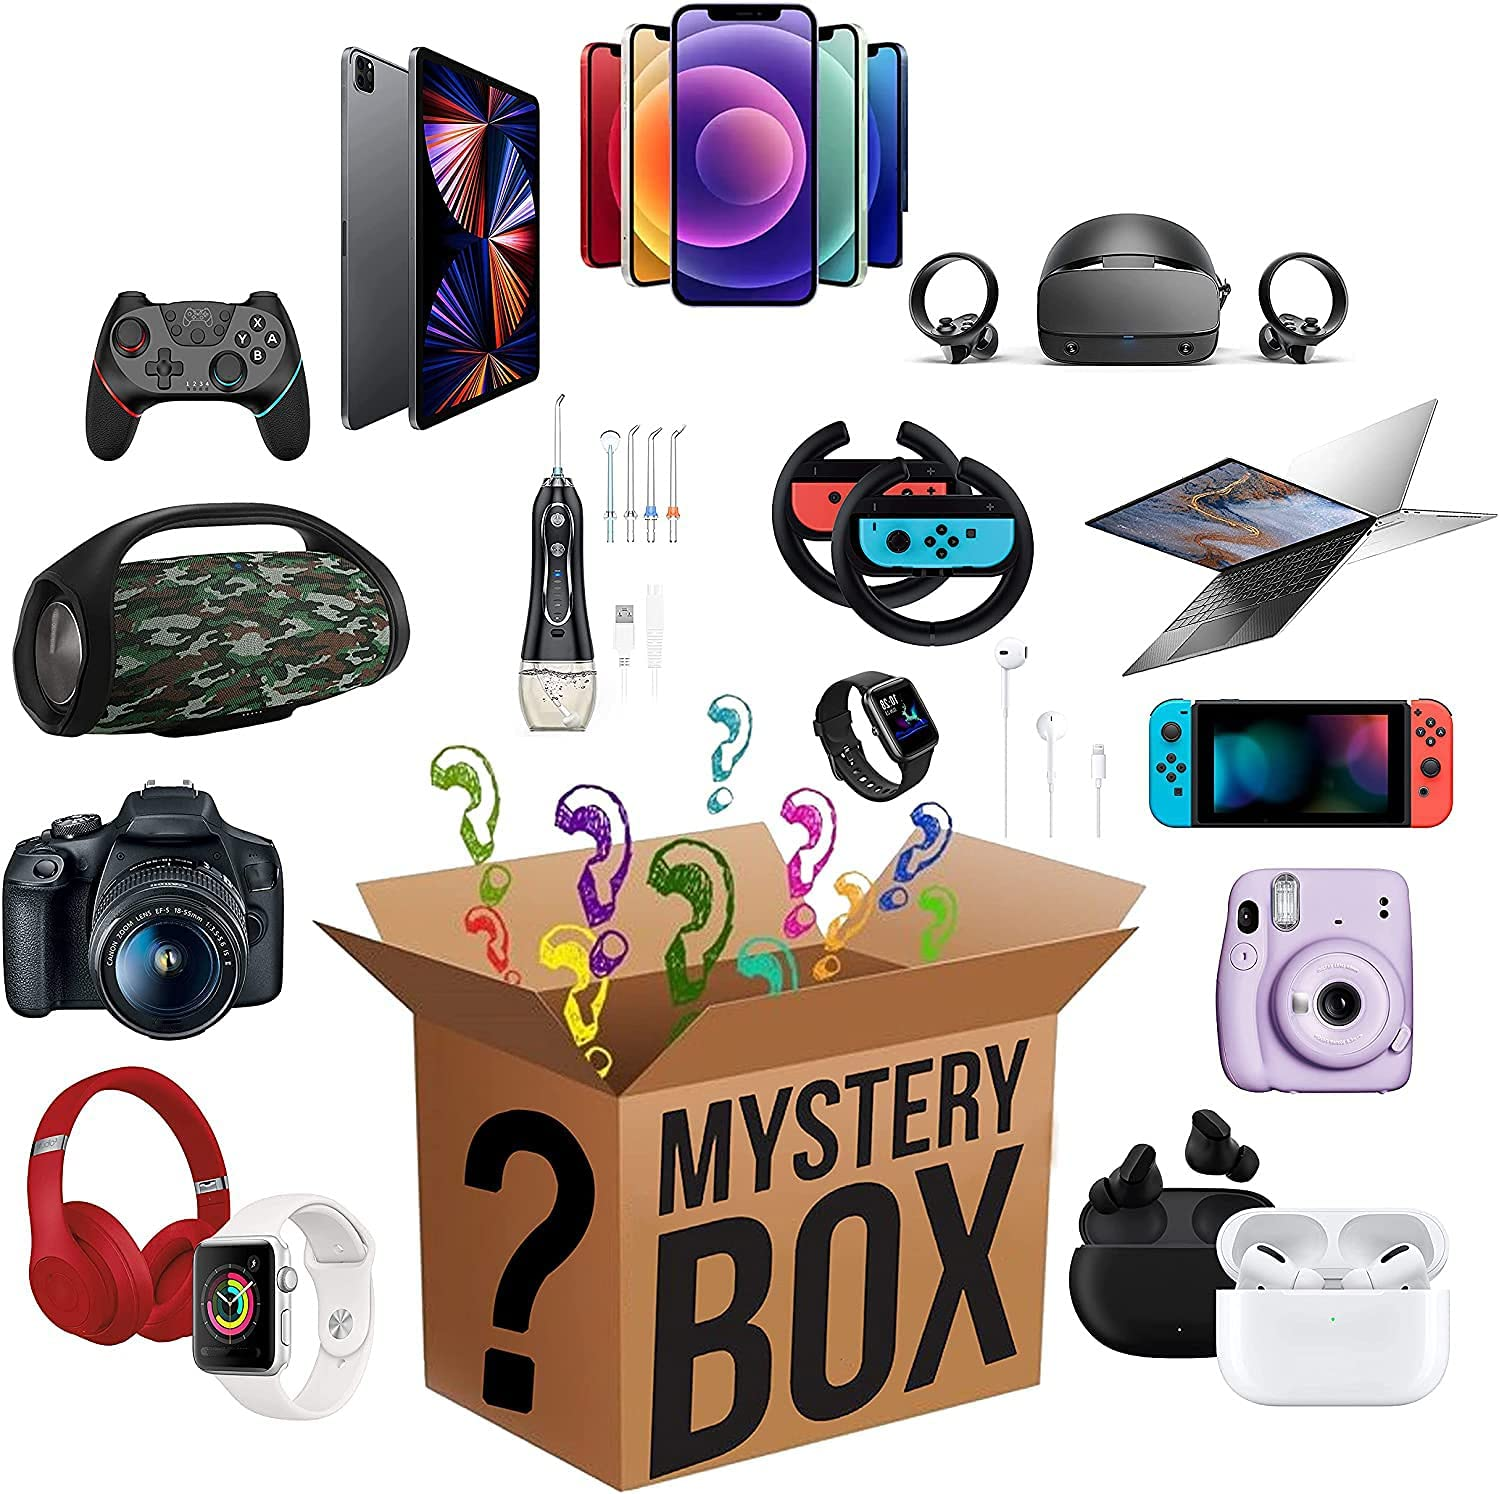 Mystery Box Dedication Electronic Lucky Super Boxes Random Outlet sale feature Costeffective